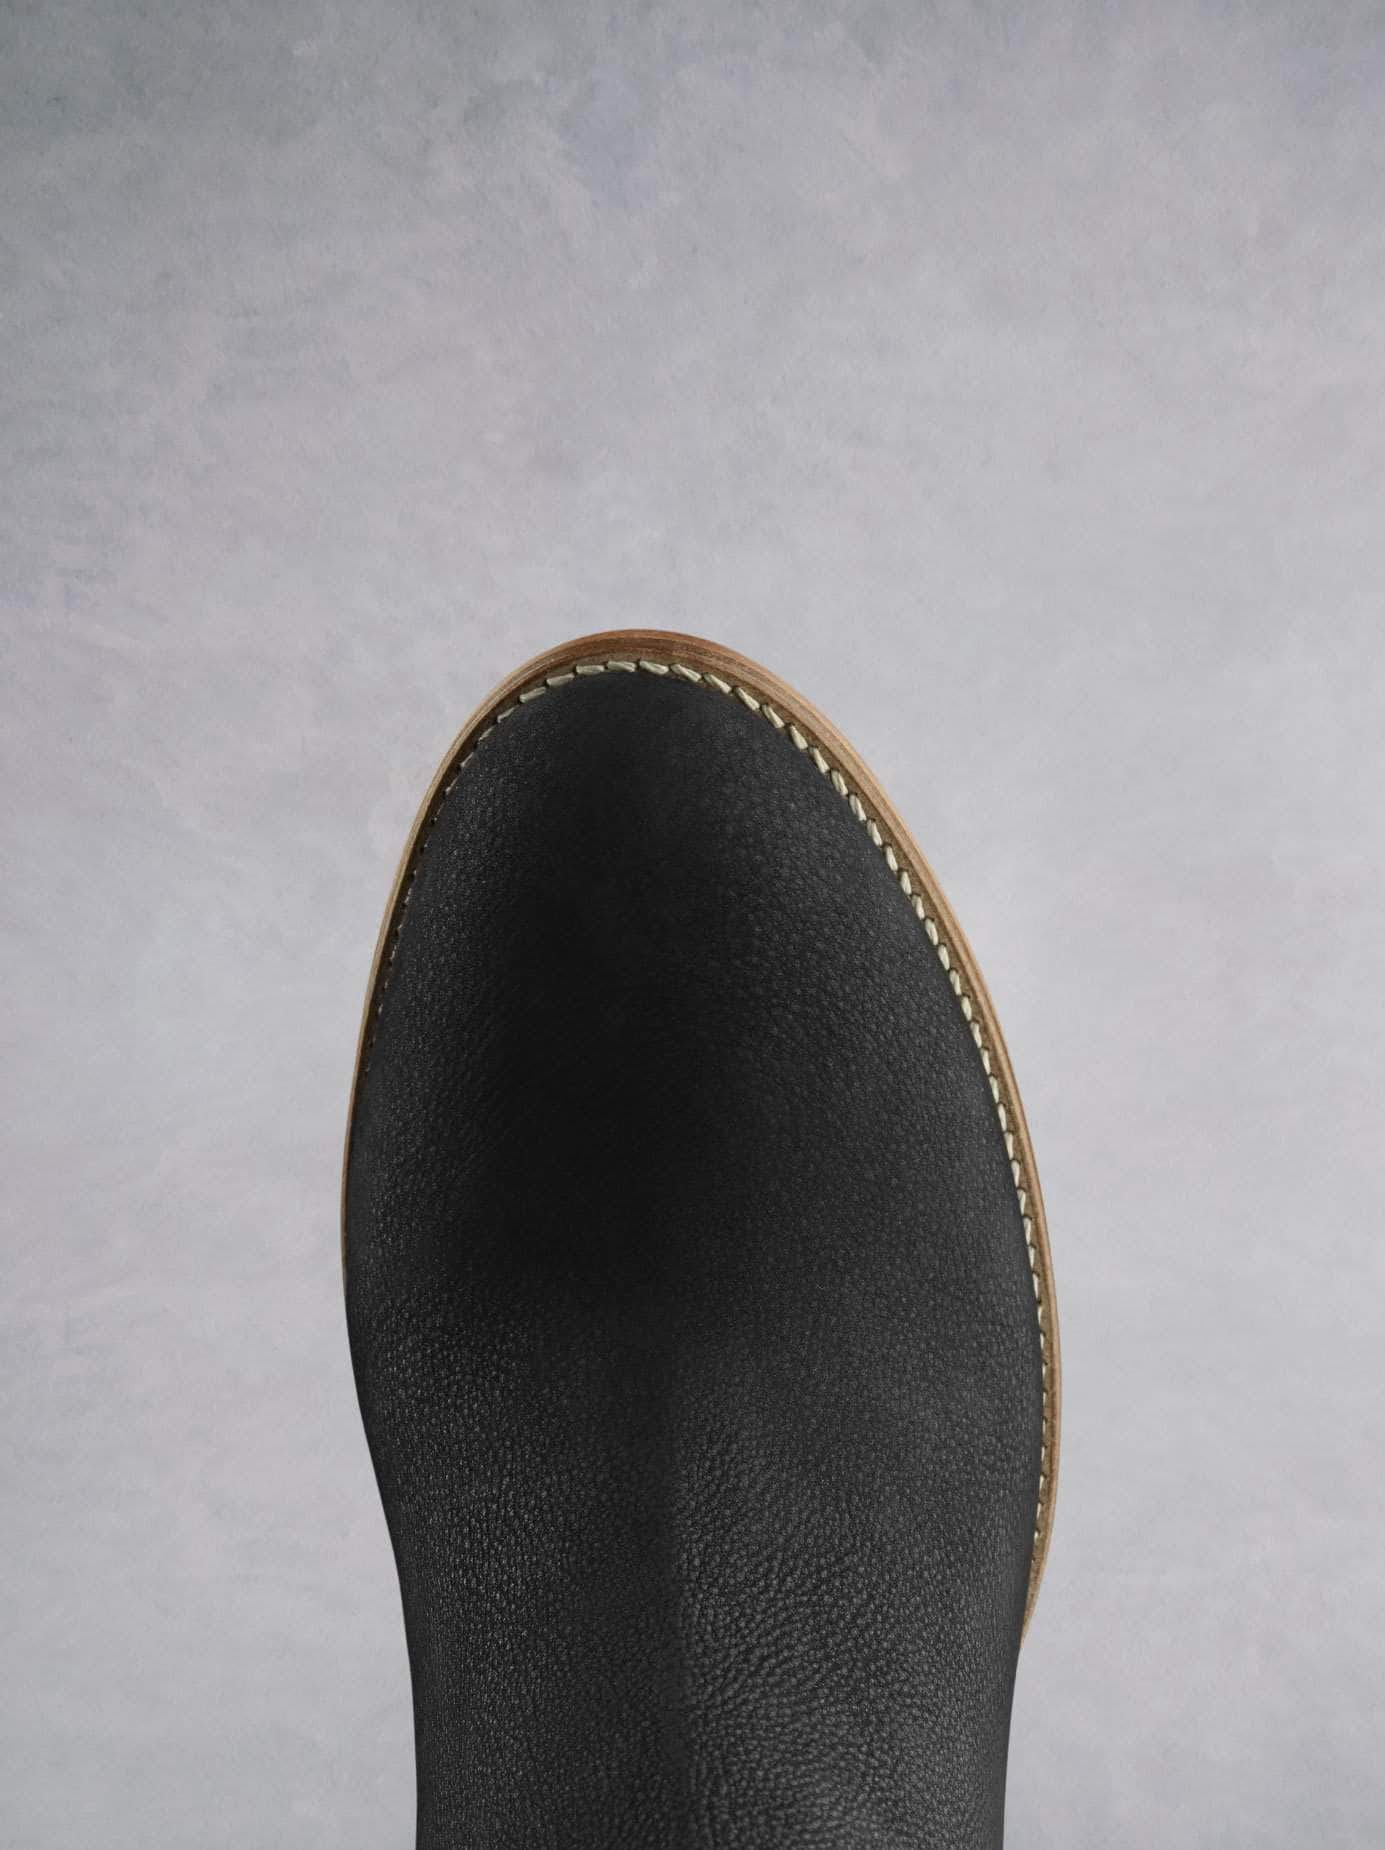 This black ankle boot has an almond toe shape highlighted by contrast white stitching.